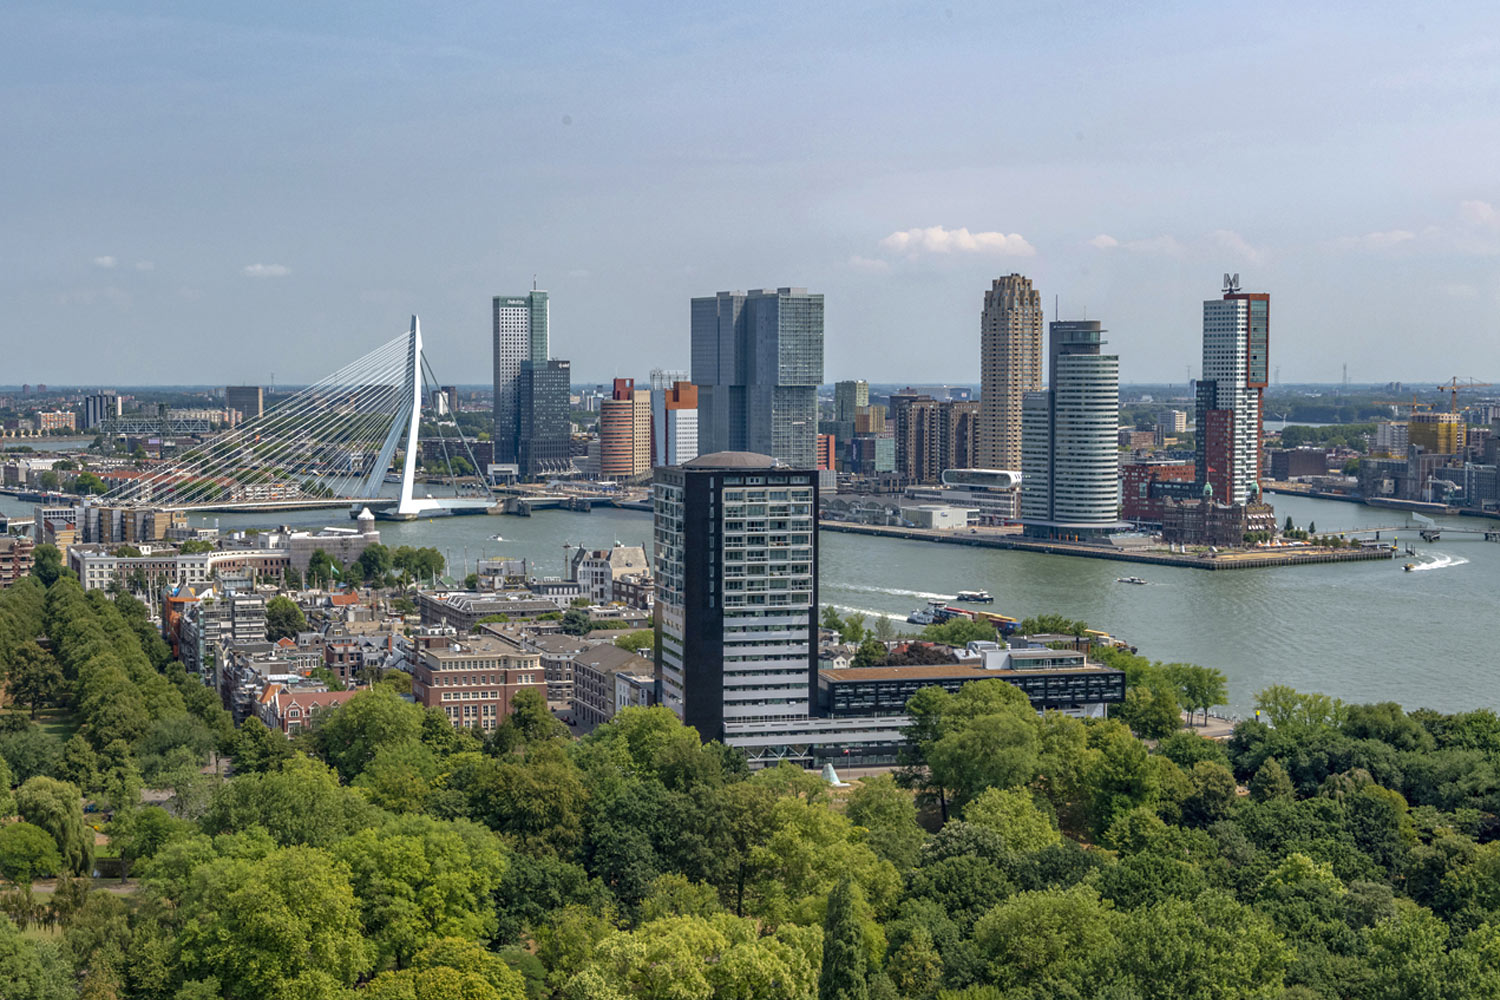 buro happold engineers and consultants in rotterdam